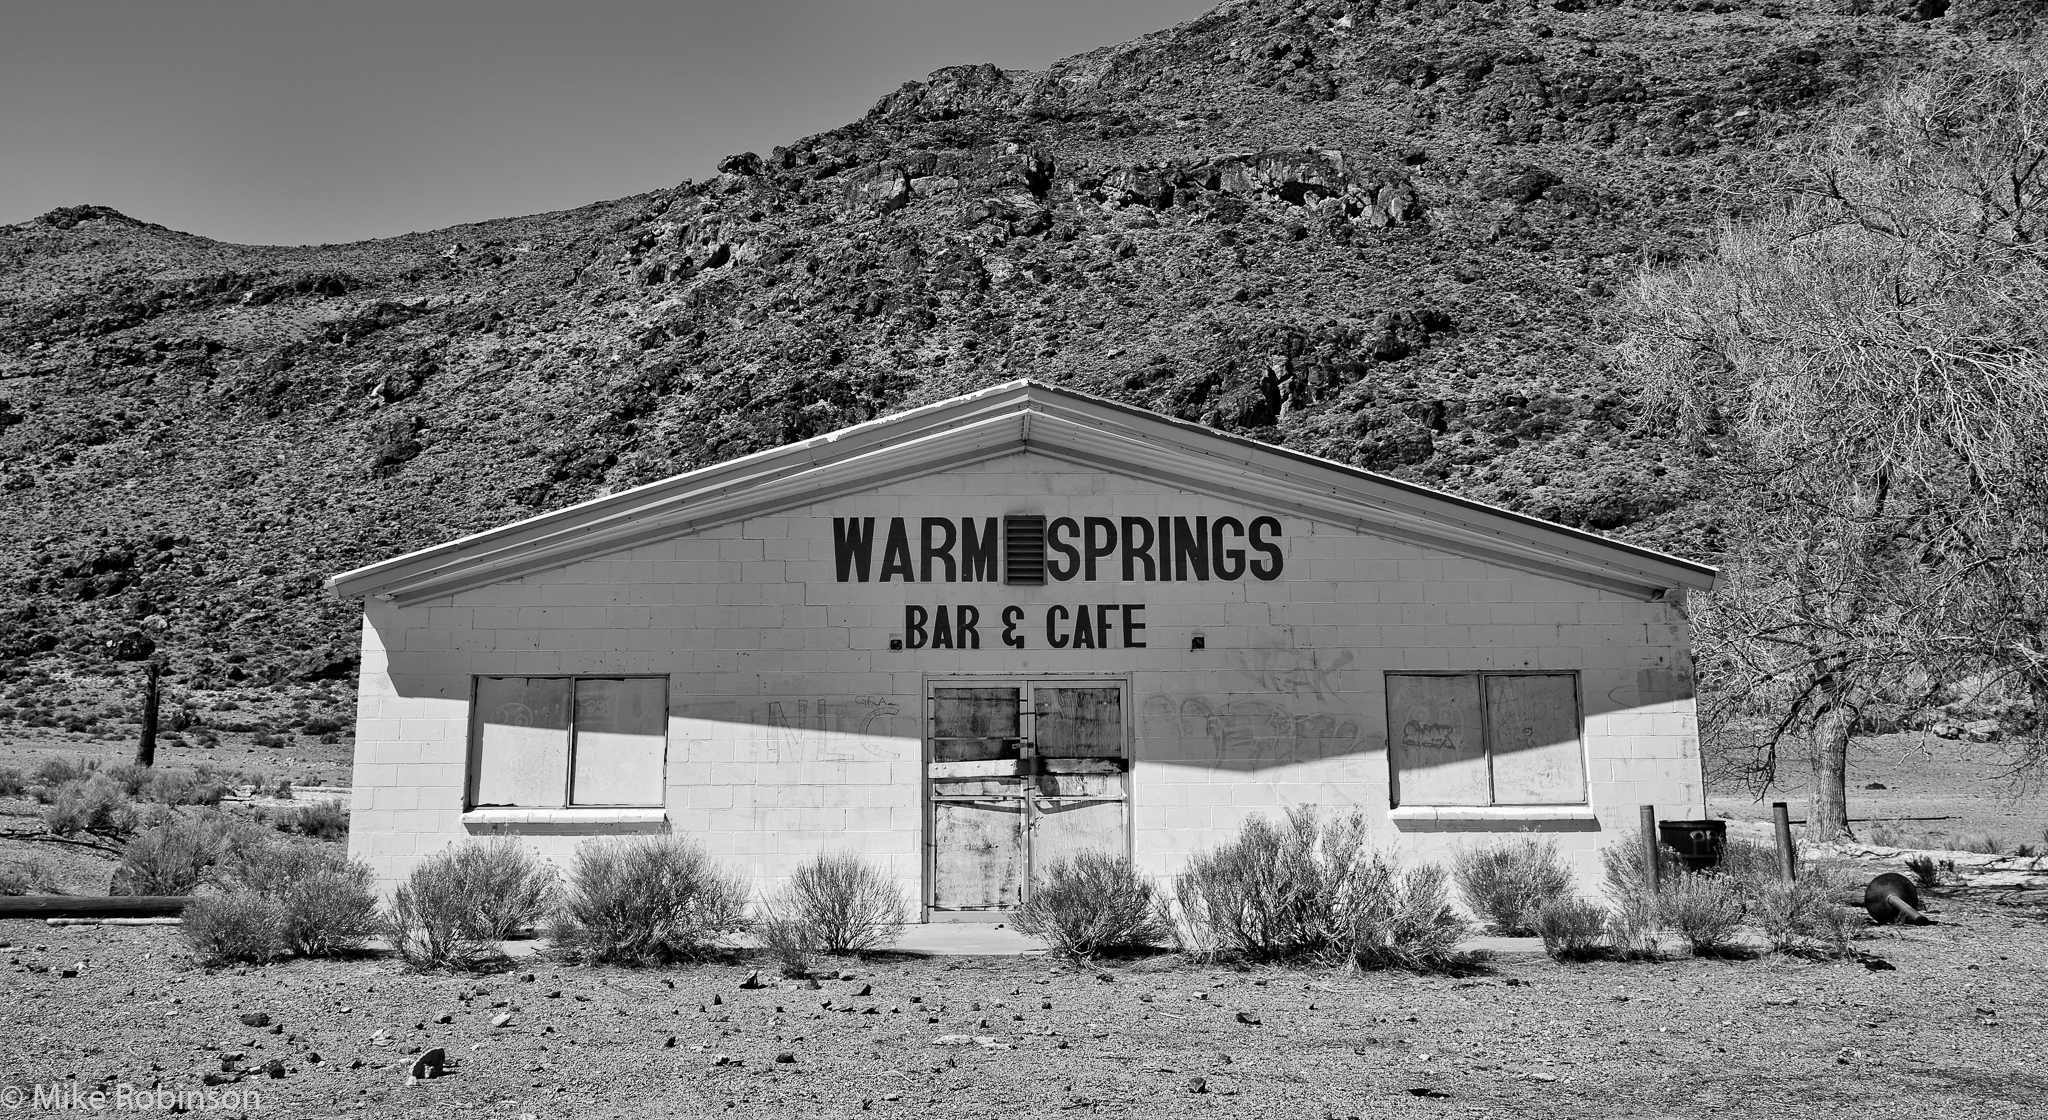 Warm_Springs_Bar_Cafe_BW